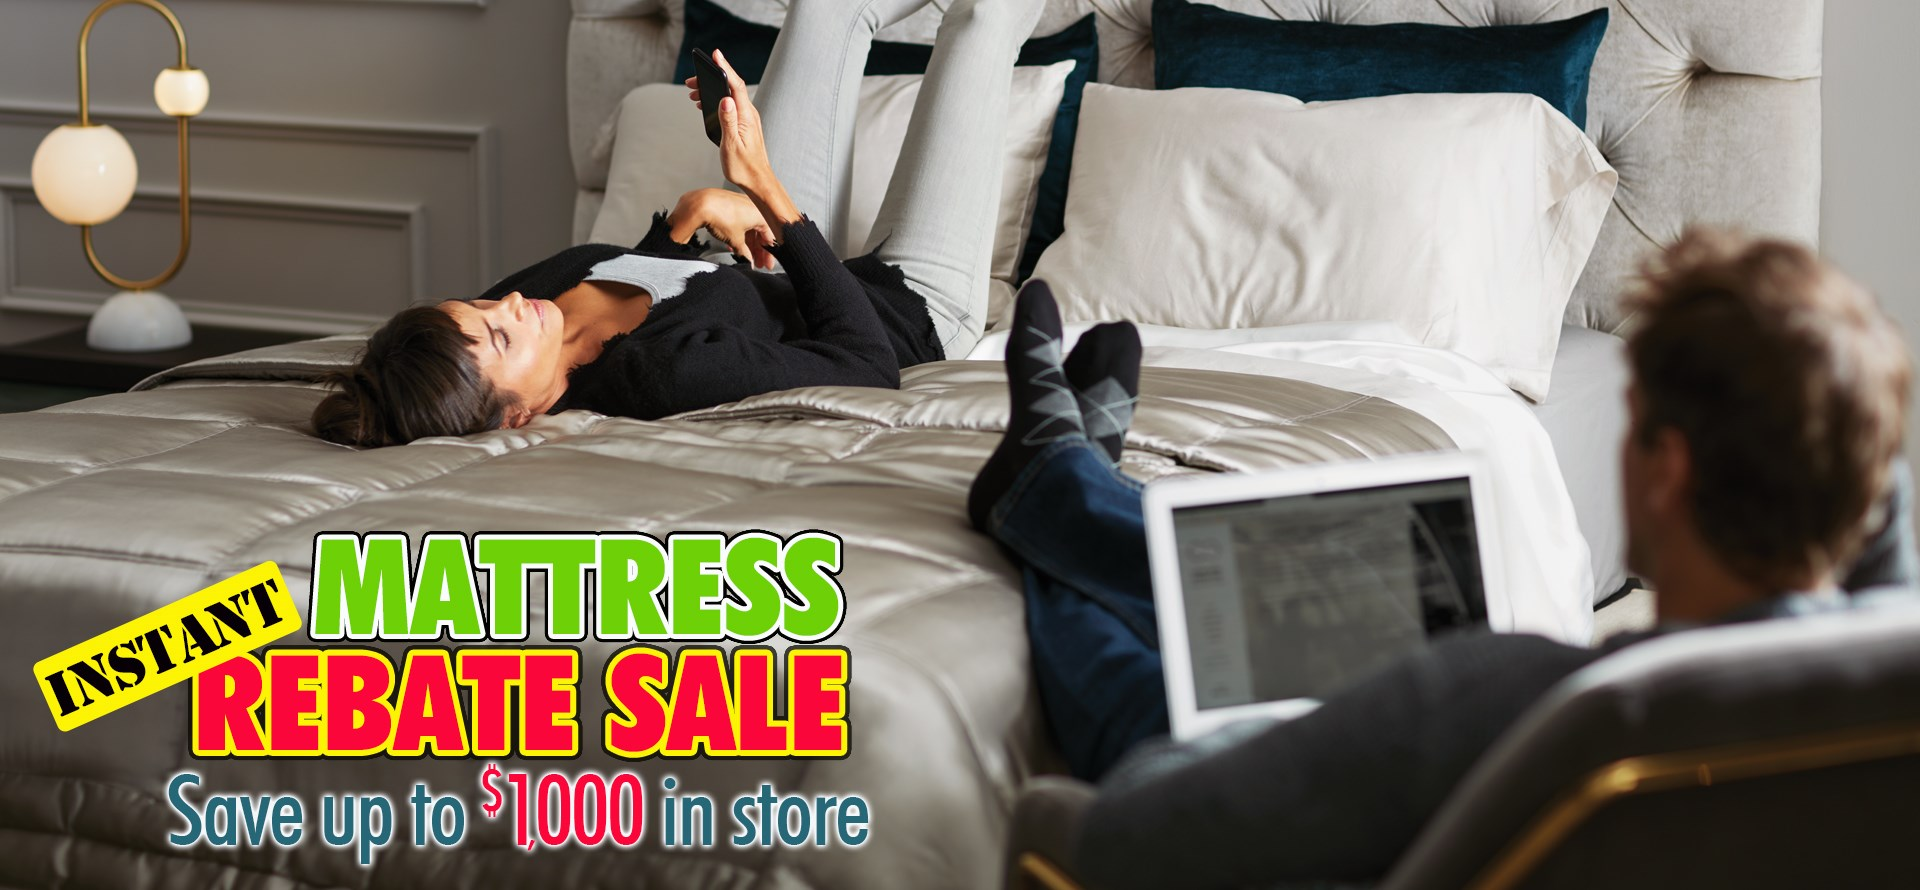 The Mattress Instant Rebate Sale is going on now. Save up to $1000 in store.